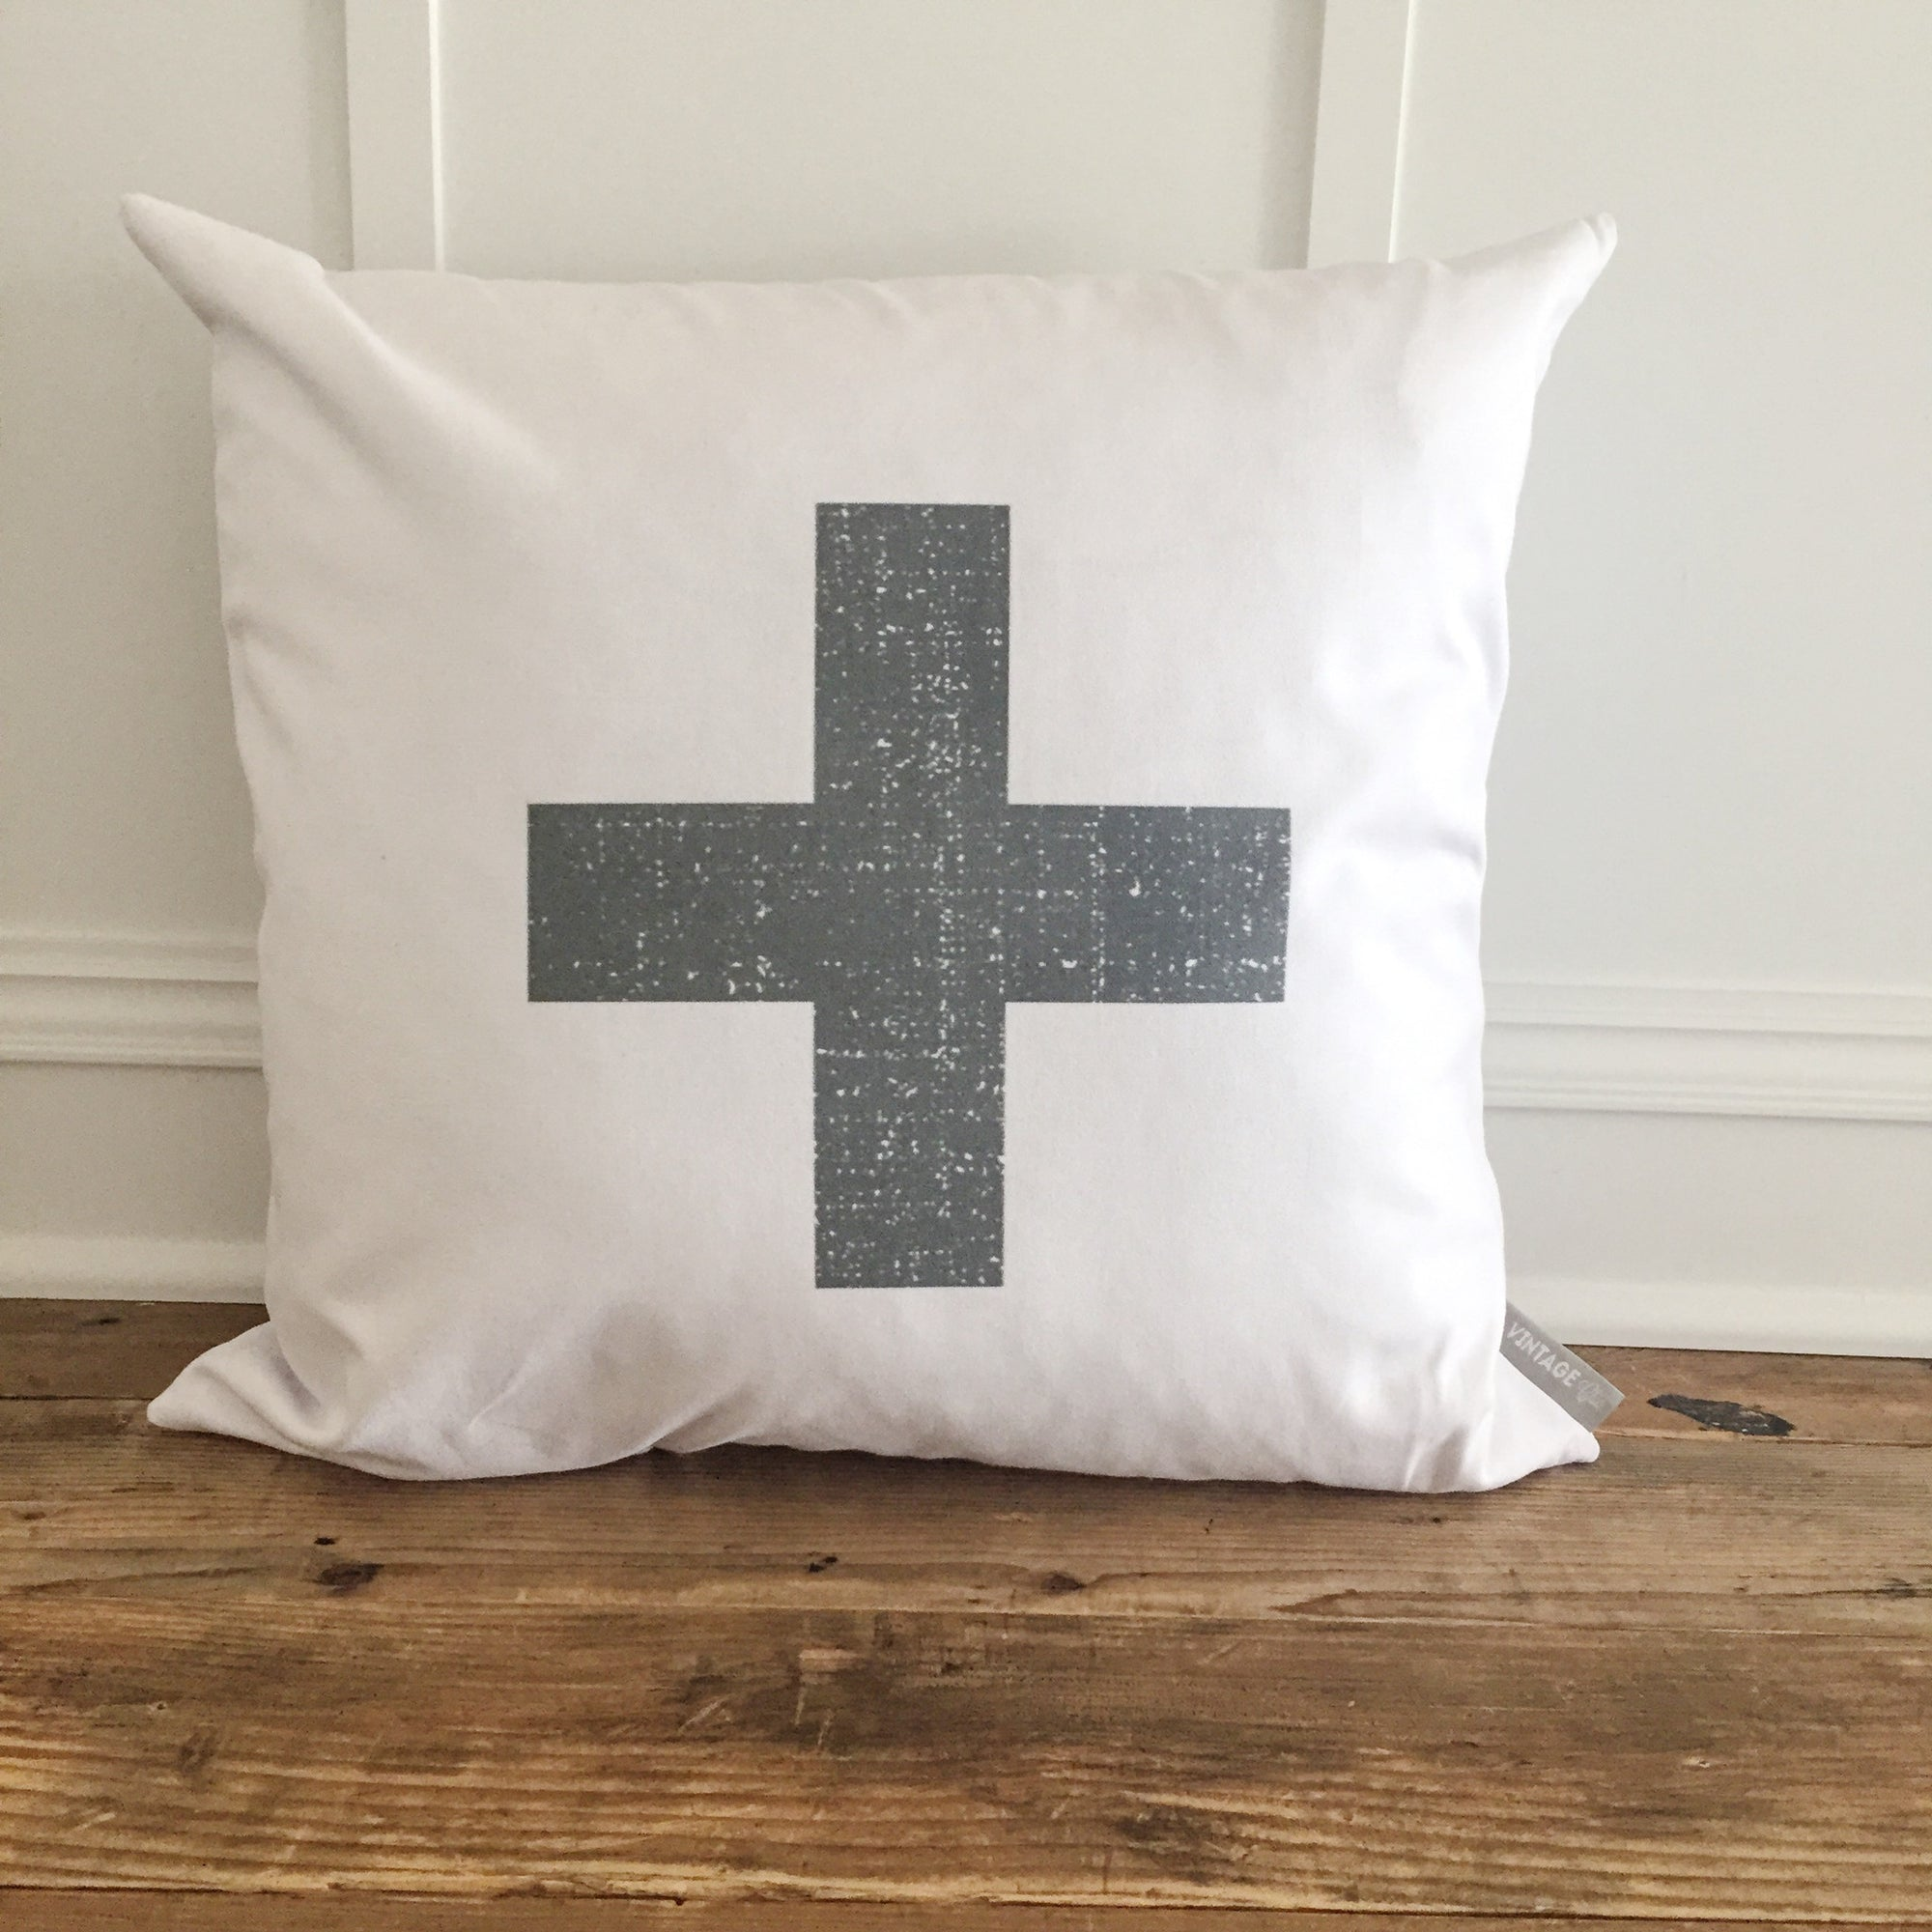 Distressed Swiss Cross Pillow Cover (Charcoal) - Linen and Ivory